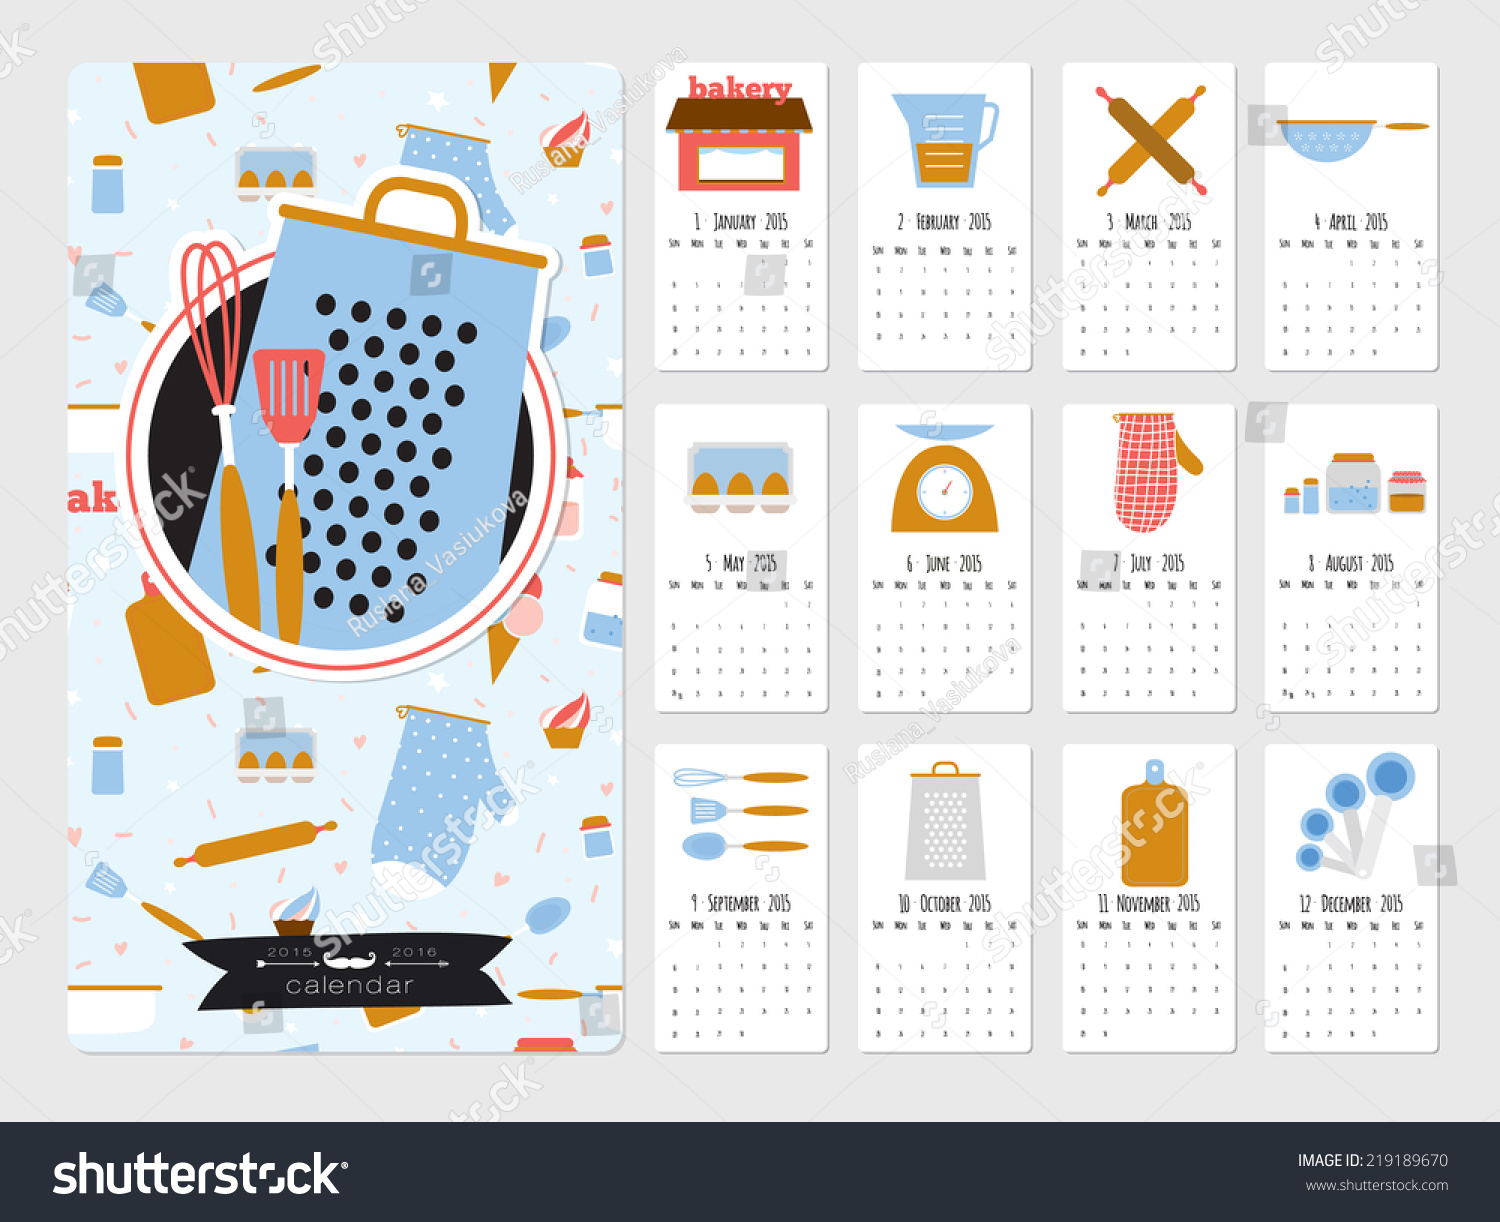 Calendar Illustration Search : Unusual calendar for cute vector food icons with